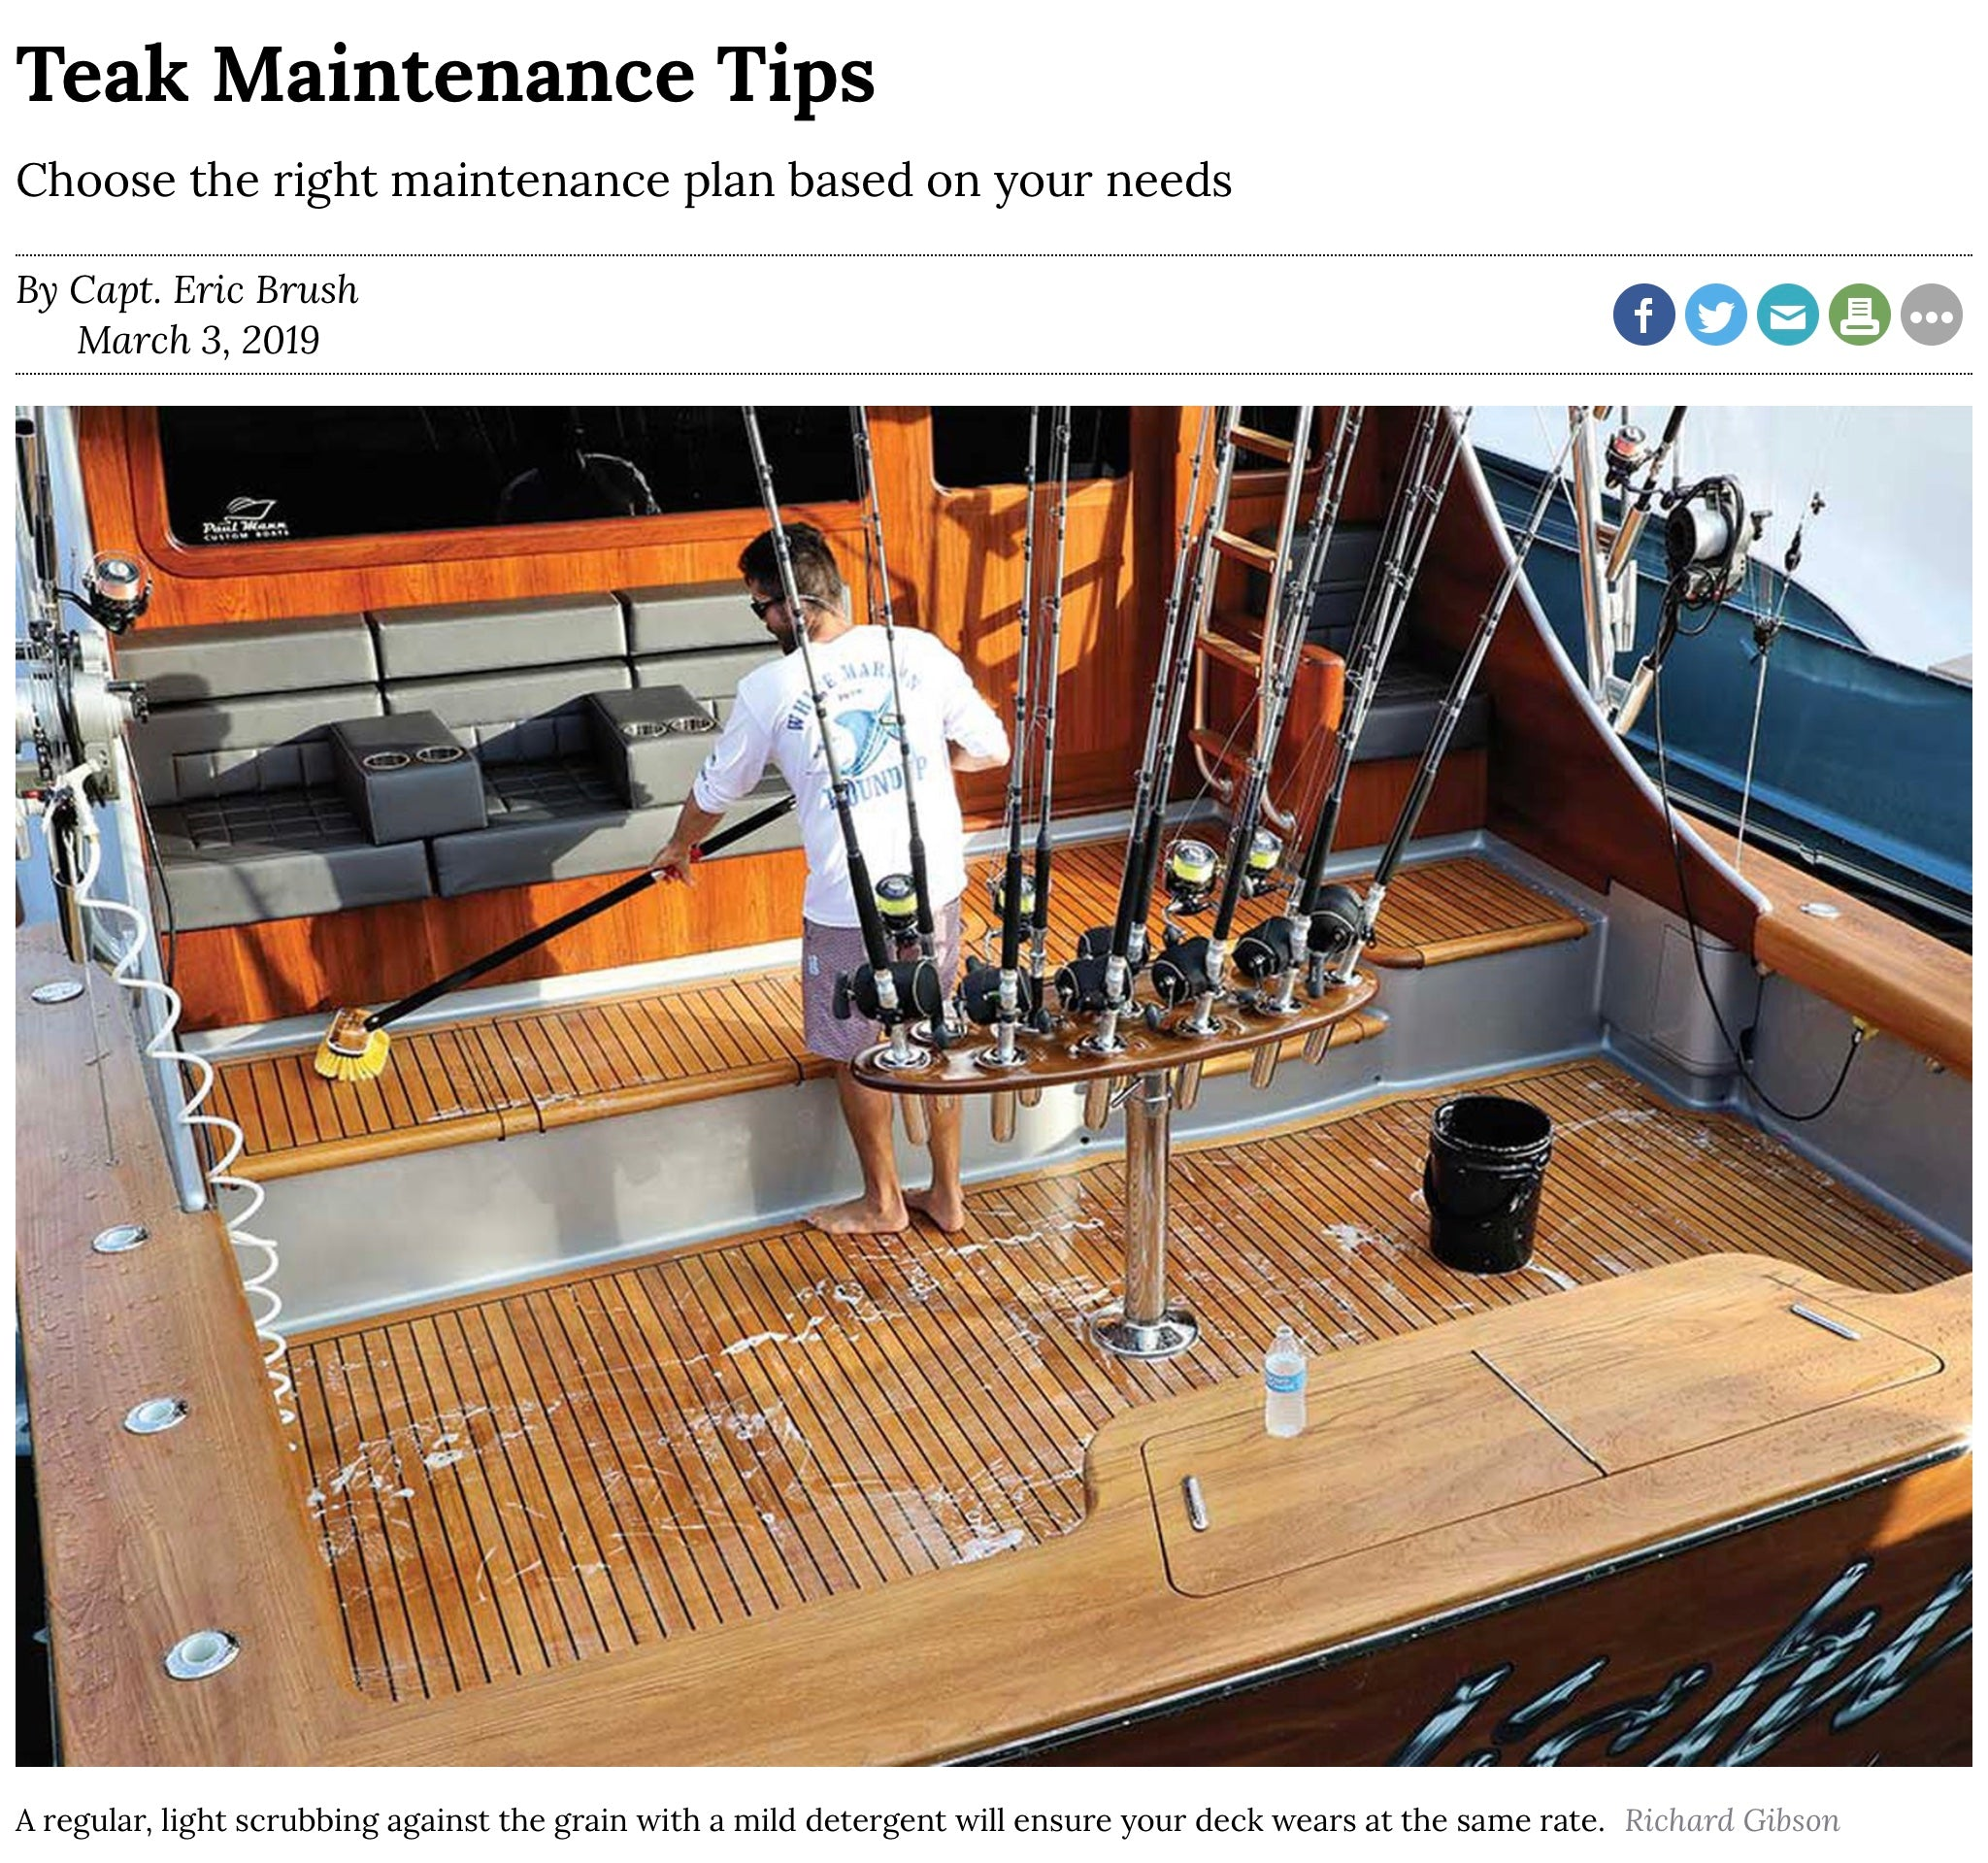 Maintaining teak on a sportfish boat